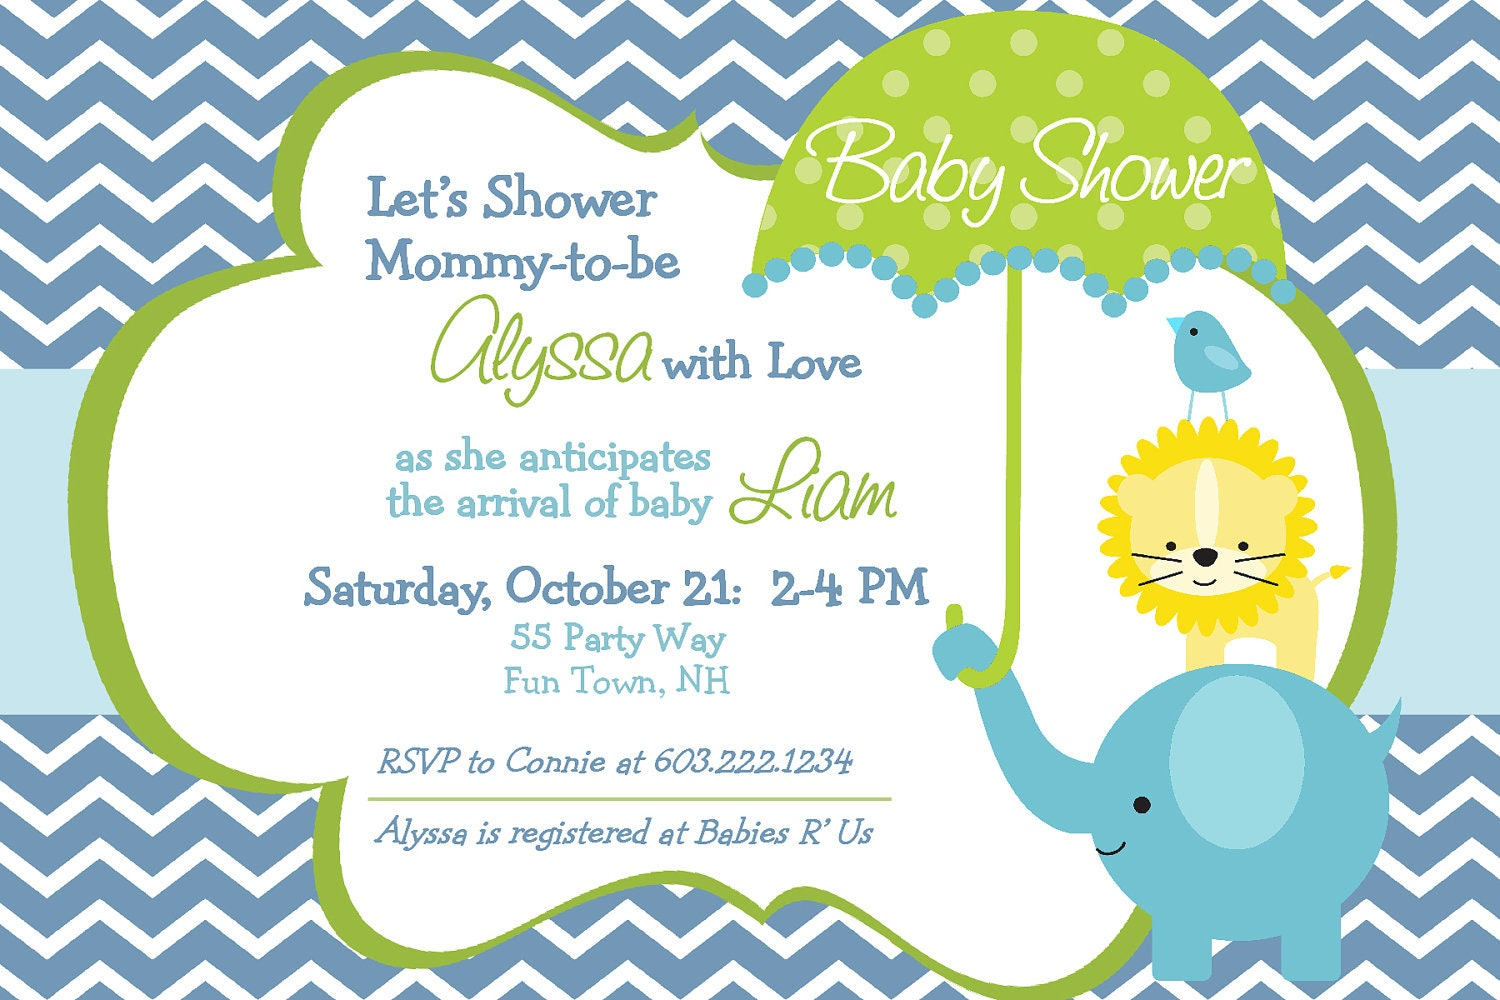 Baby Boy Shower Invitations Templates 1500 x 1000